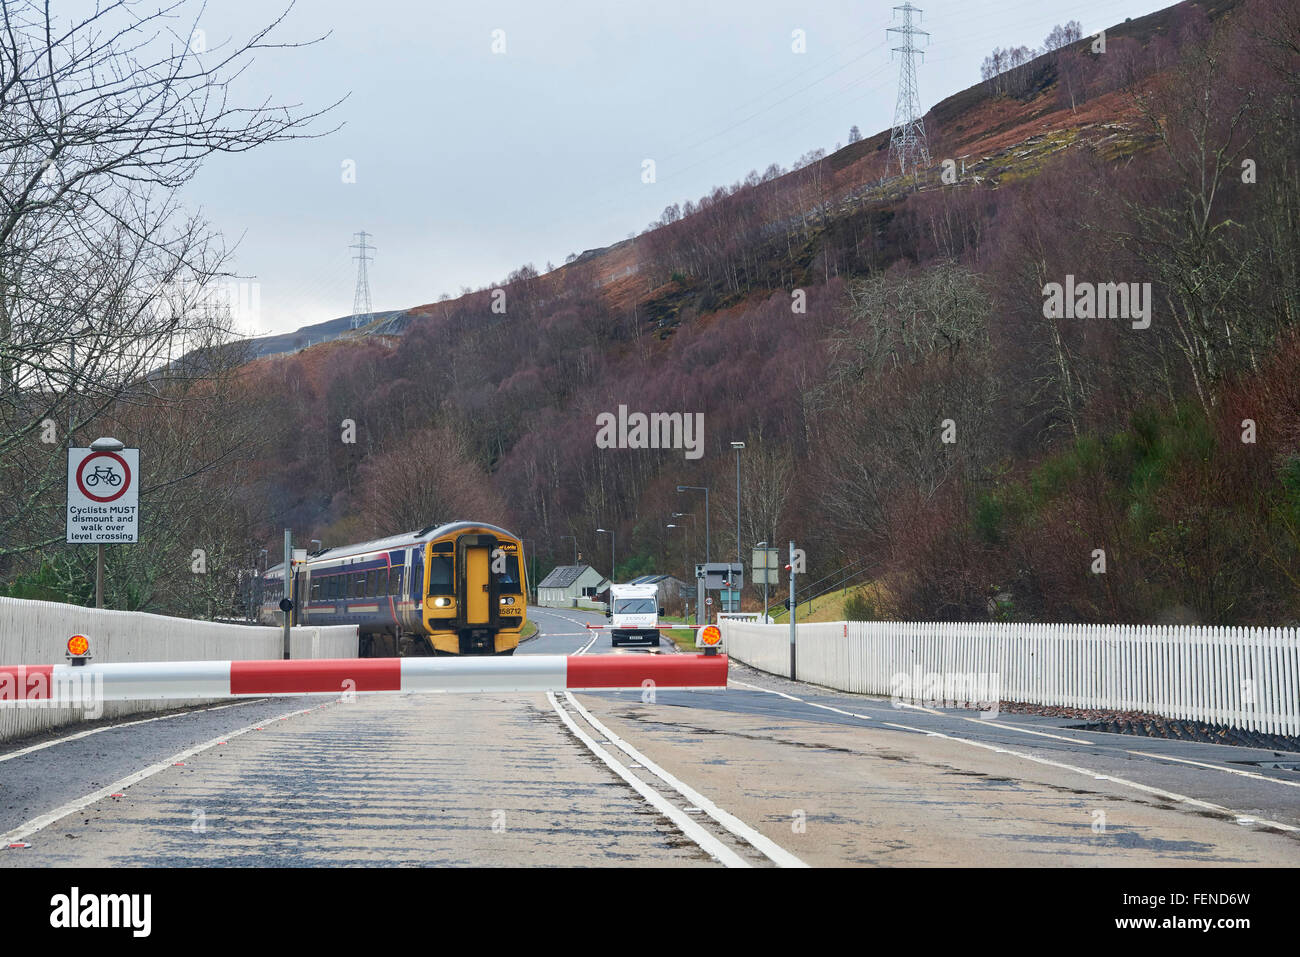 Scotrail train on the Inverness-Kyle railway line, at Garve, Wester Ross, Scottish Highlands - Stock Image